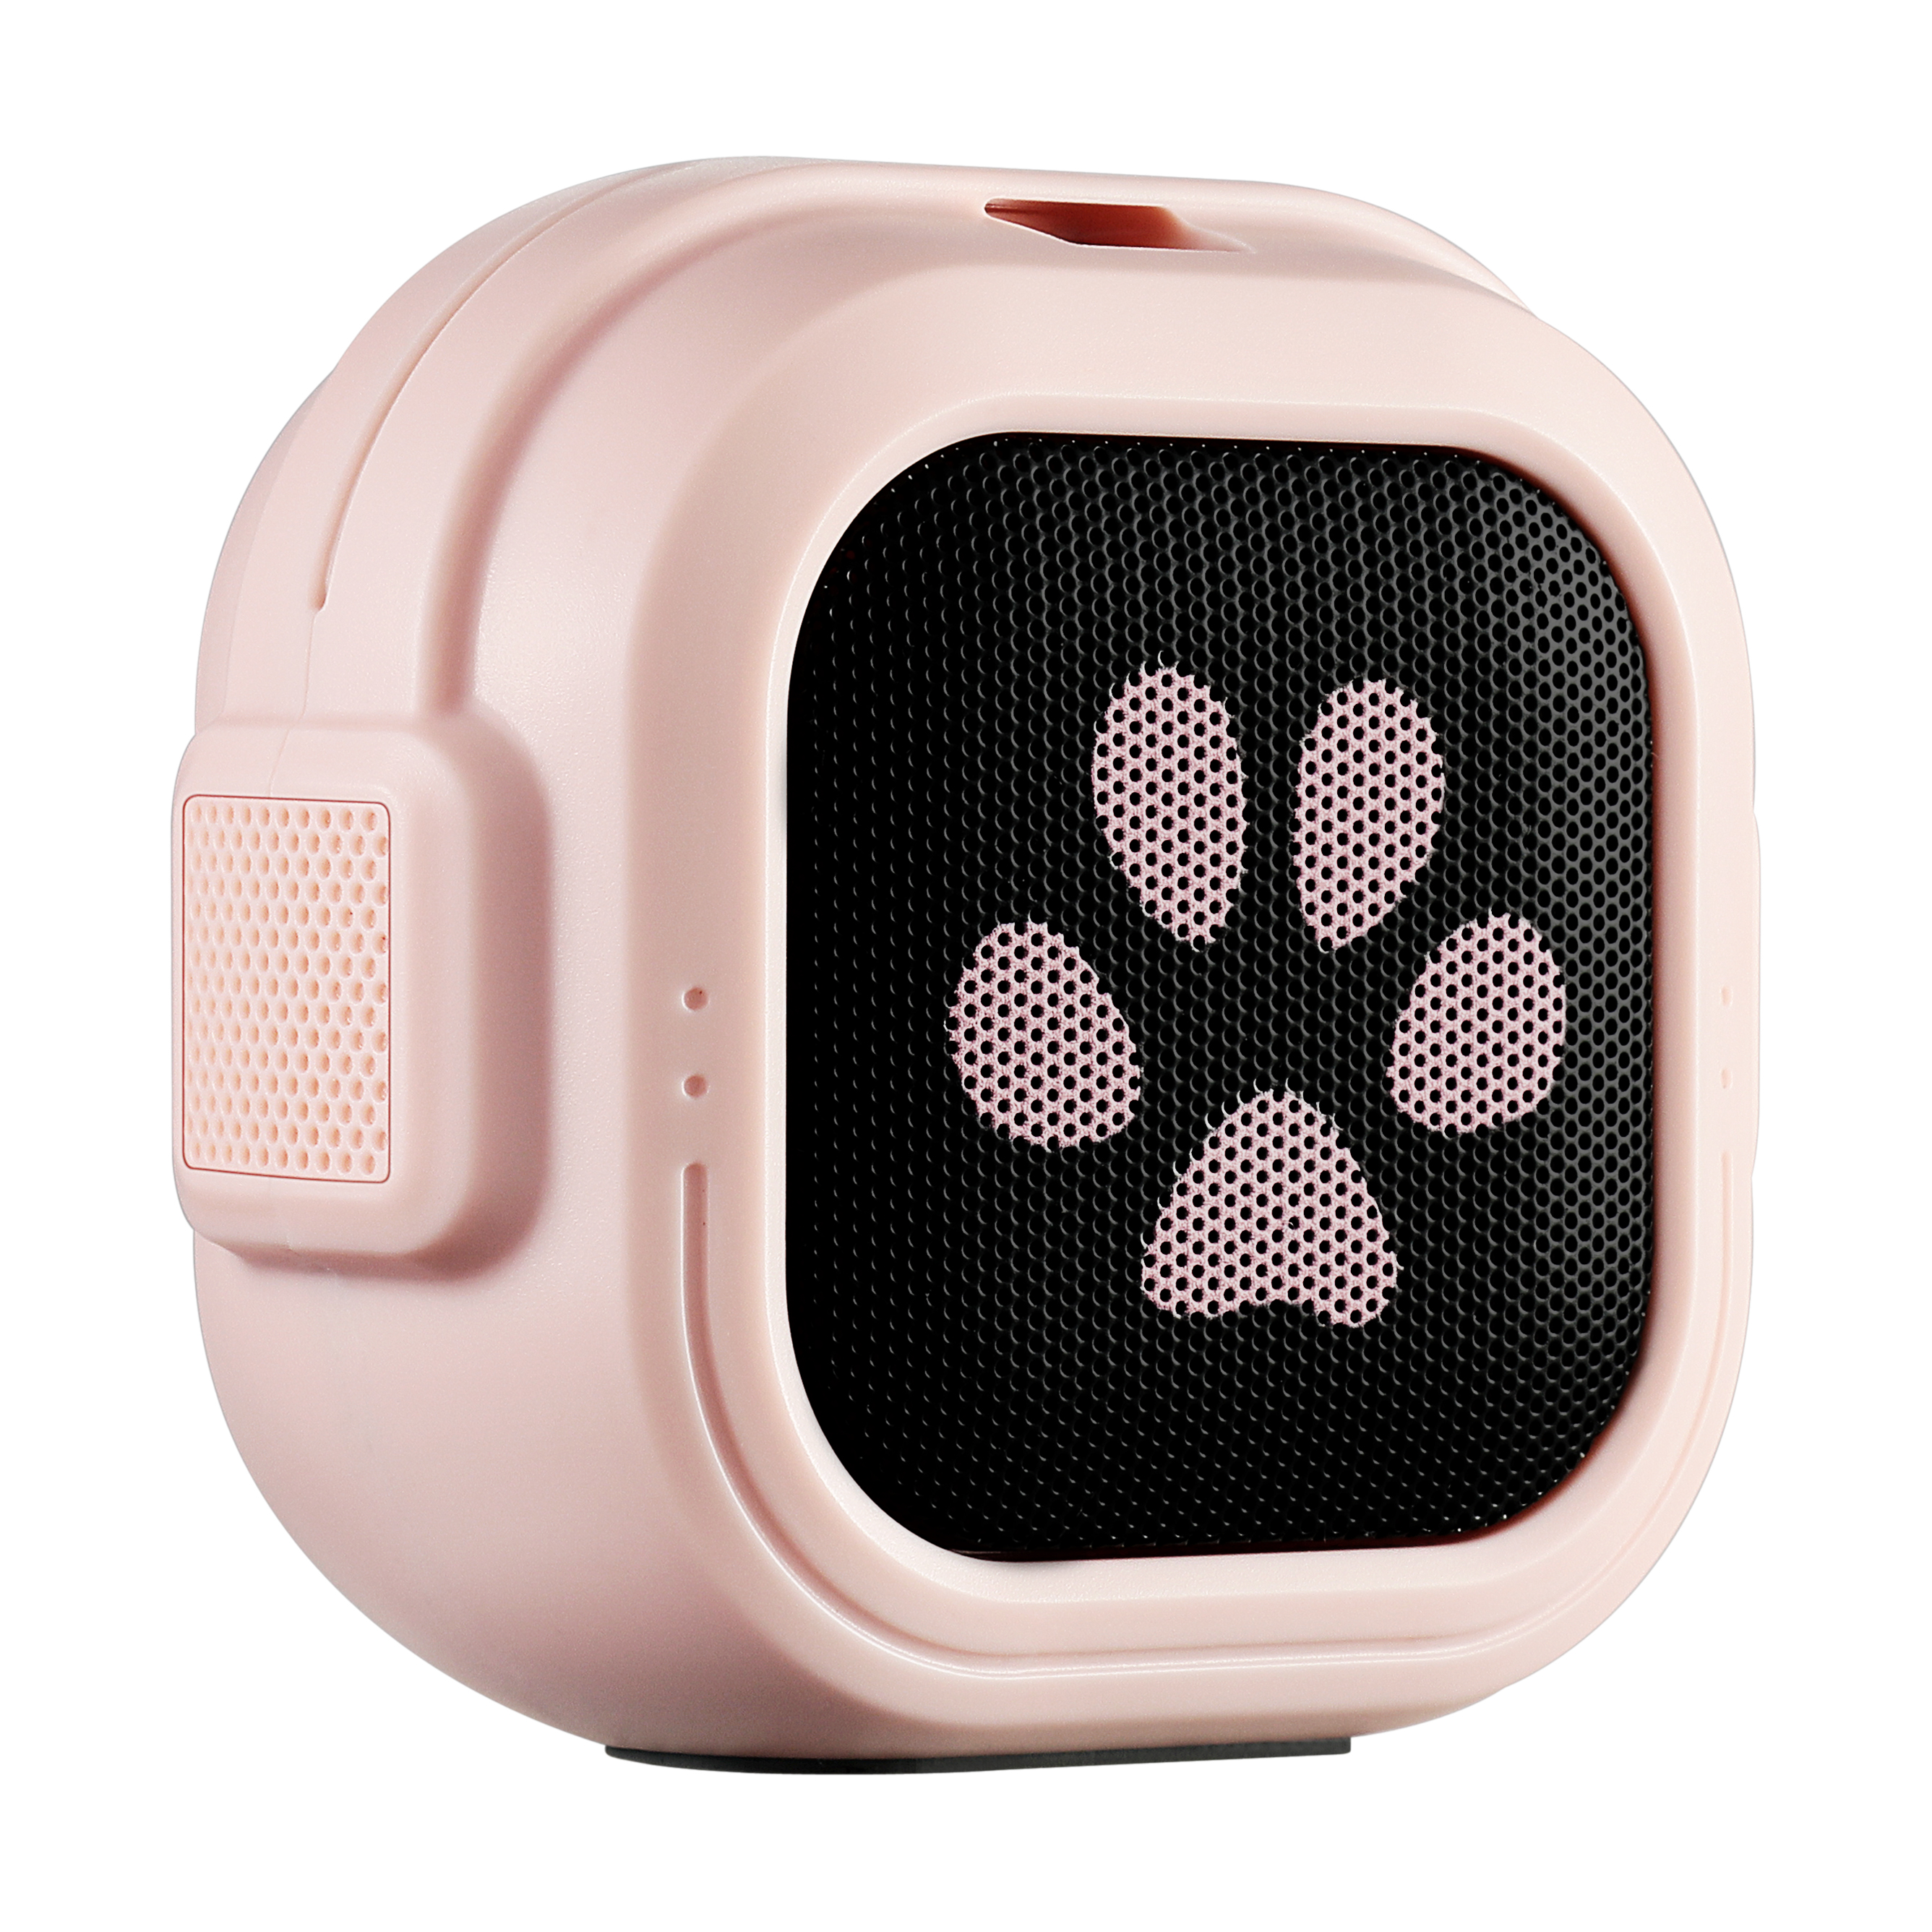 Mini Wireless Bluetooth Speaker with HiFi Bass Small But Loud, The Next Generation of Portable Speakers for Home, Outdoors (Rose)